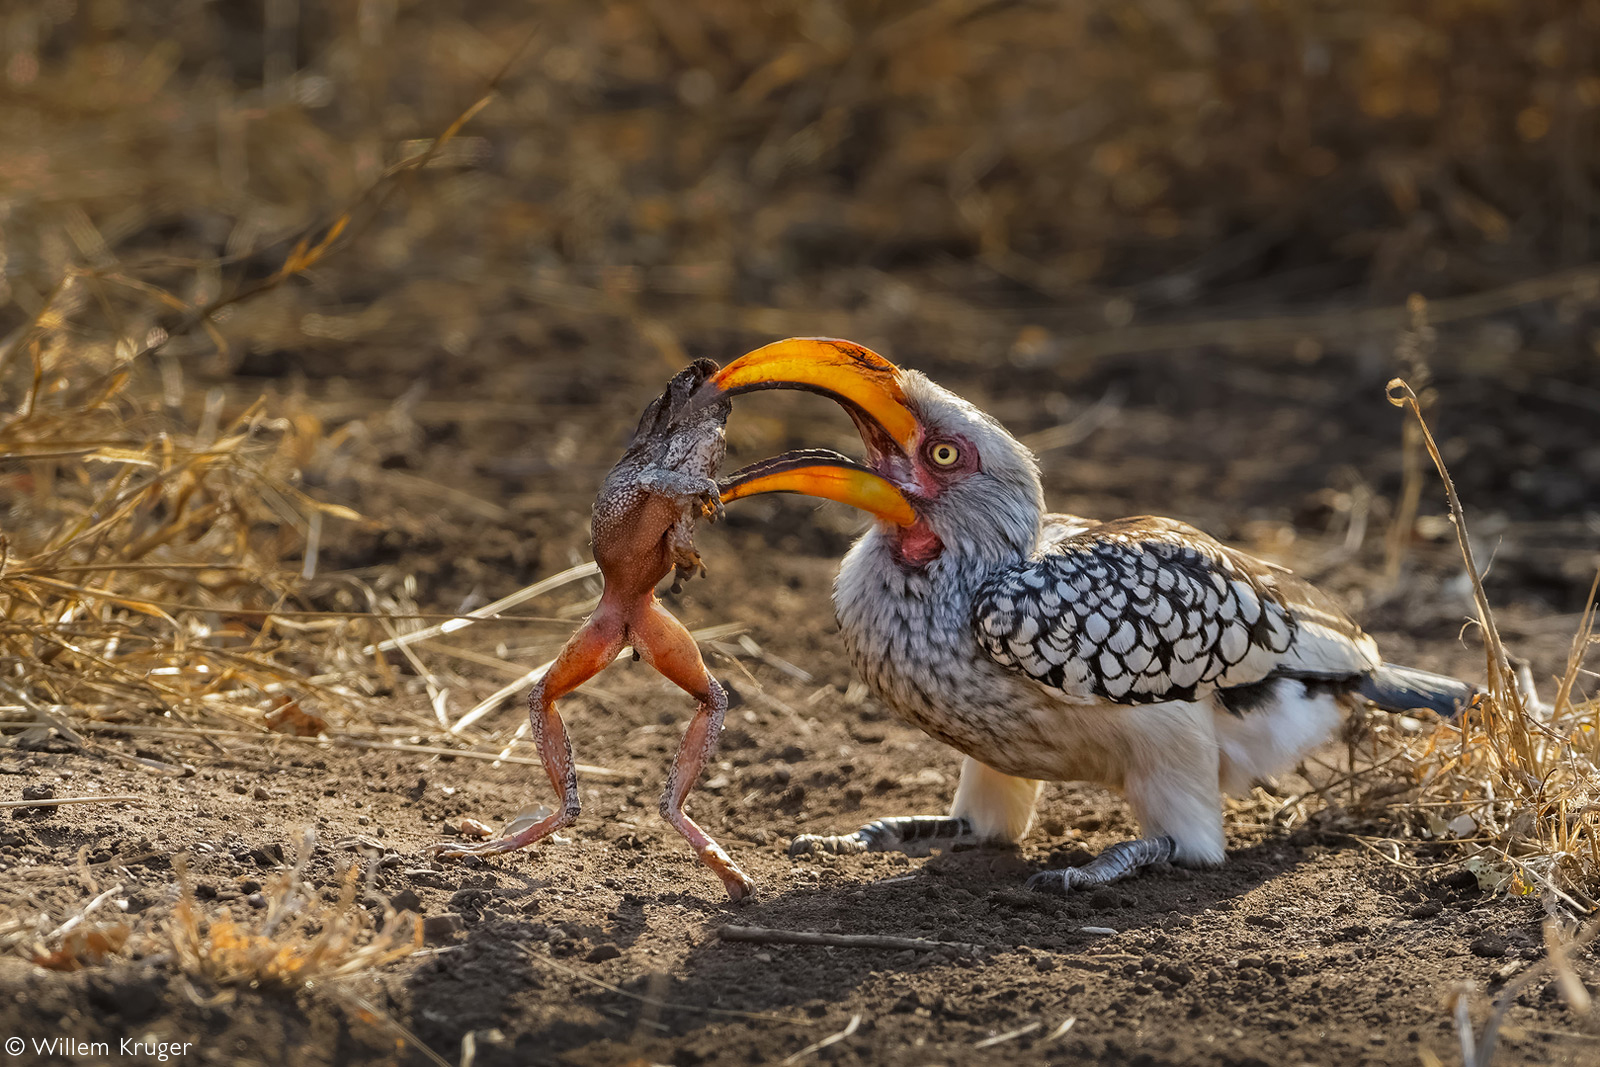 A yellow-billed hornbill with a large toad. Kruger National Park, South Africa © Willem Kruger